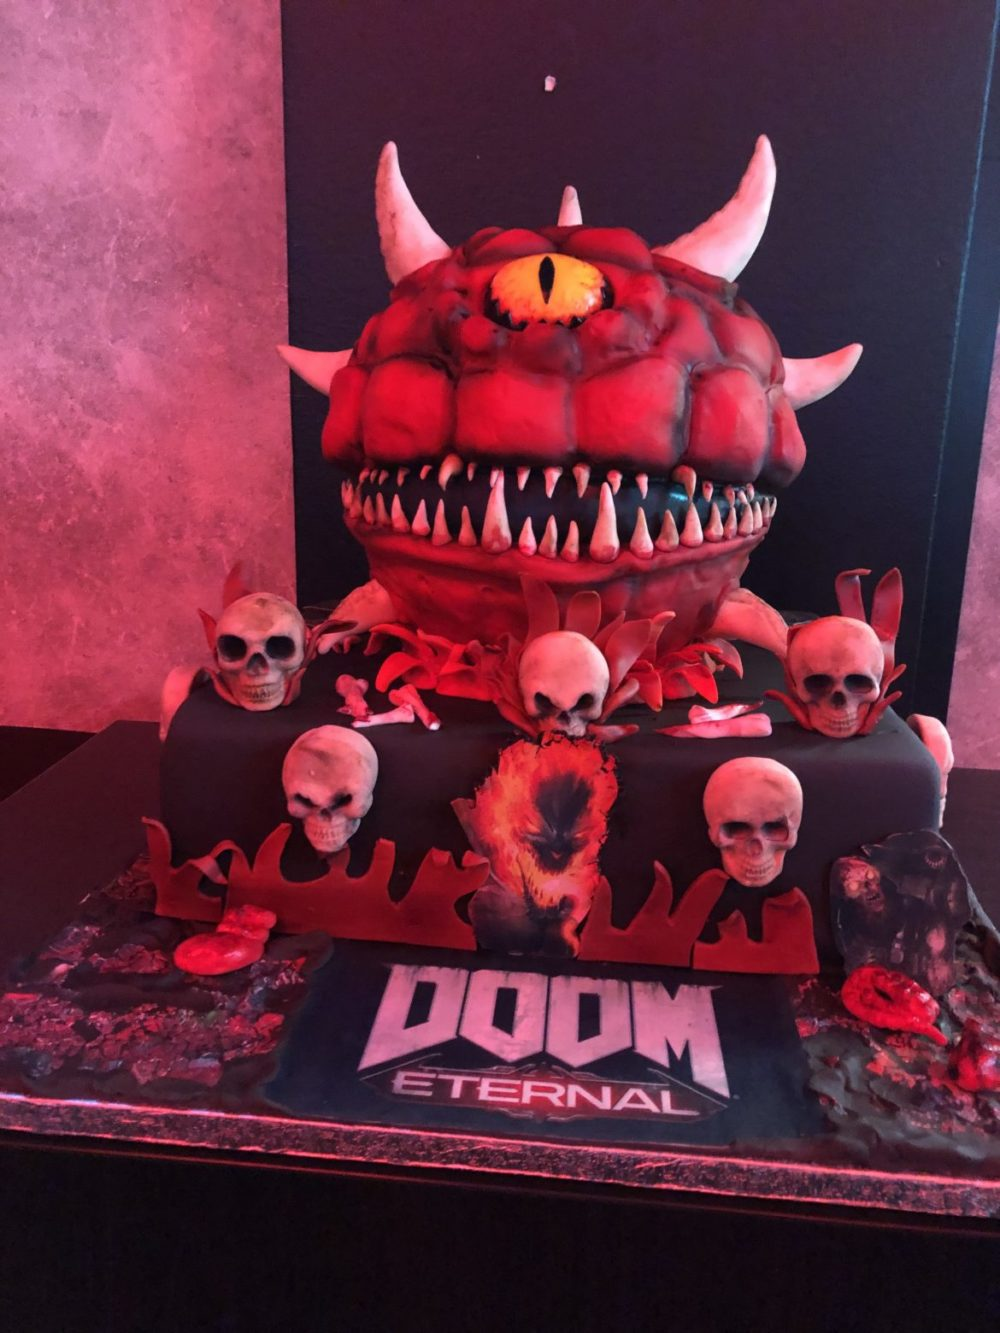 doom eternal tårta